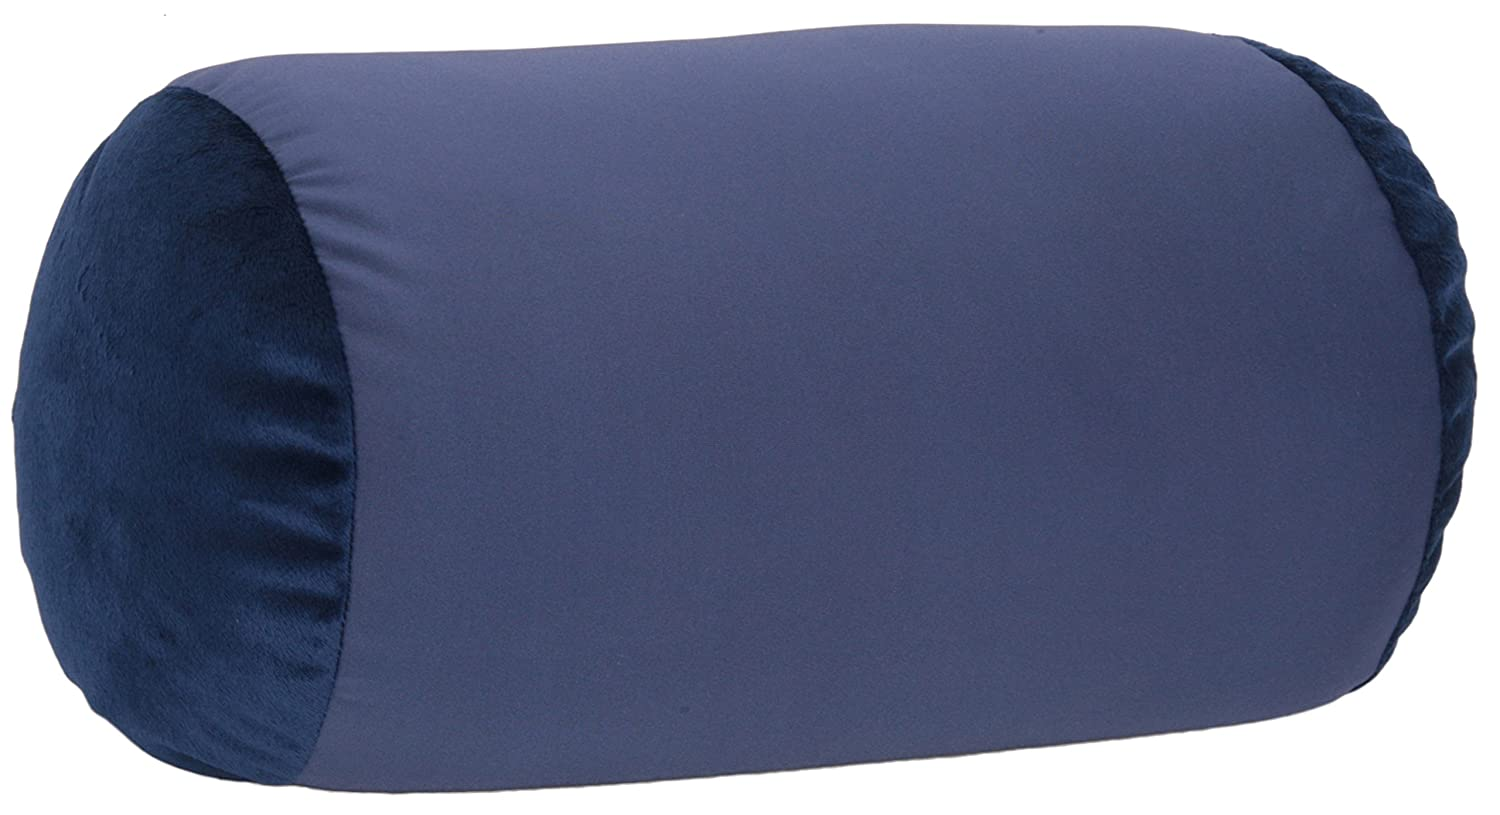 Deluxe Comfort Mooshi Squish Microbead Bed Pillow